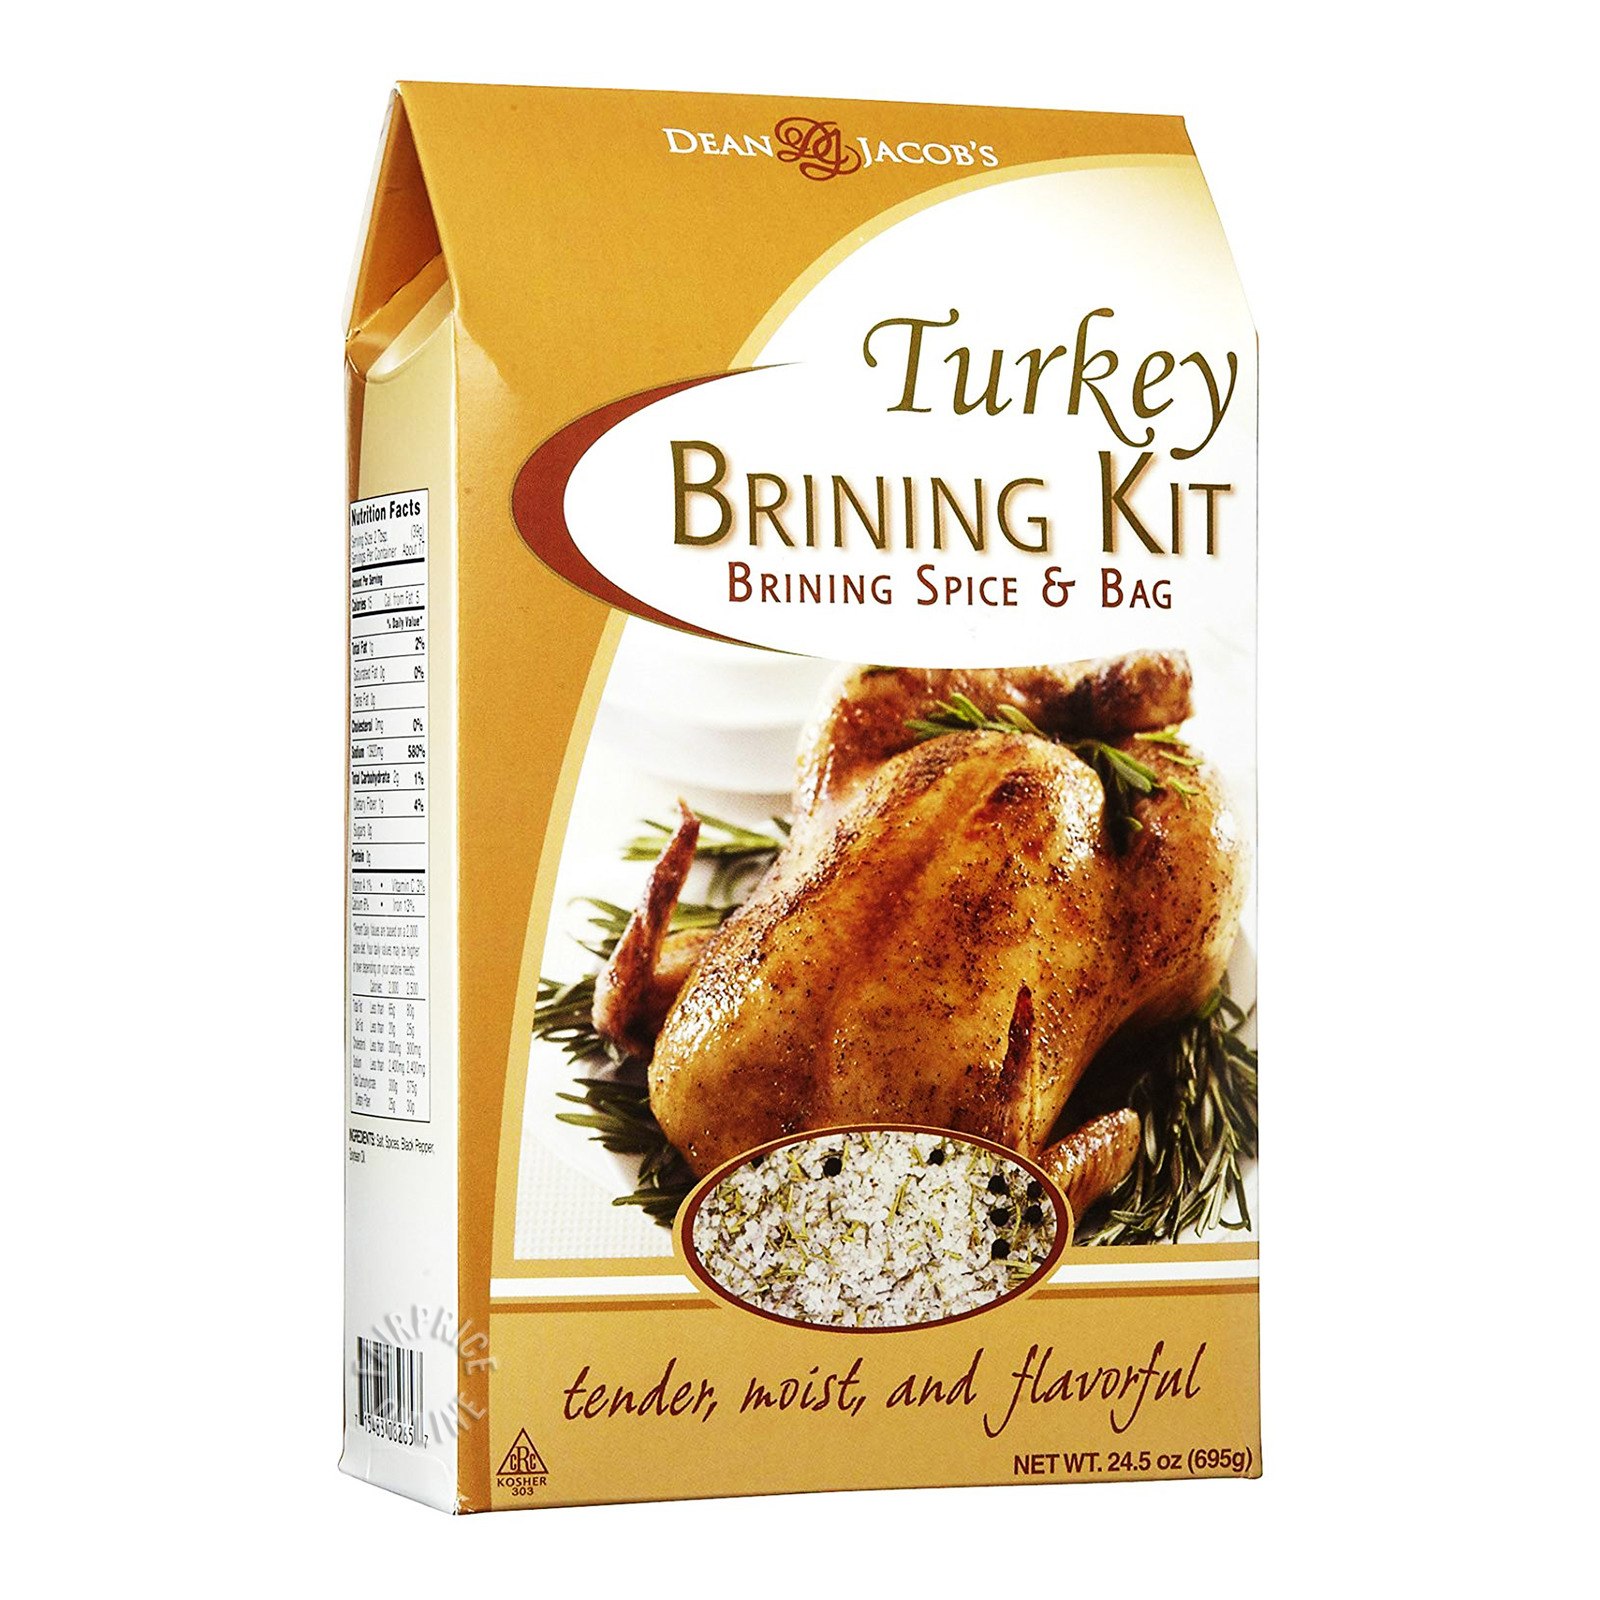 Dean & Jacob's Turkey Brining Kit - Spice & Bag